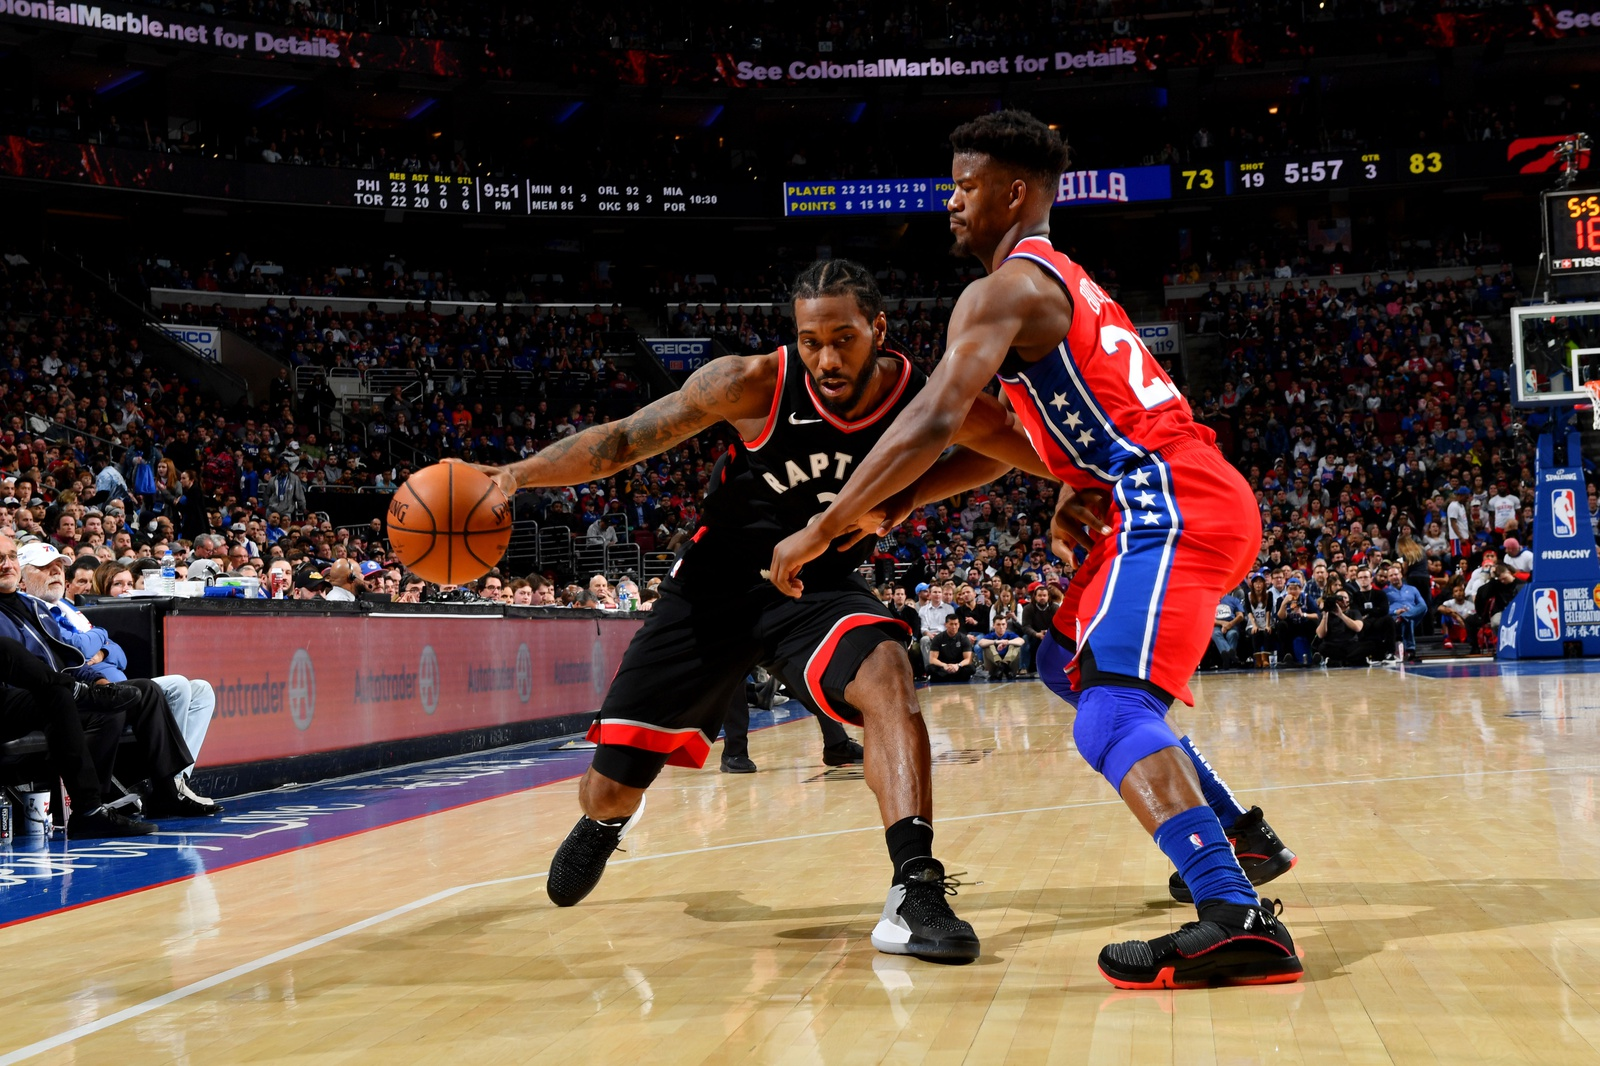 Kawhi Leonard #2 of the Toronto Raptors handles the ball against Jimmy Butler #23 of the Philadelphia 76ers on February 5, 2019 at the Wells Fargo Center in Philadelphia, Pennsylvania